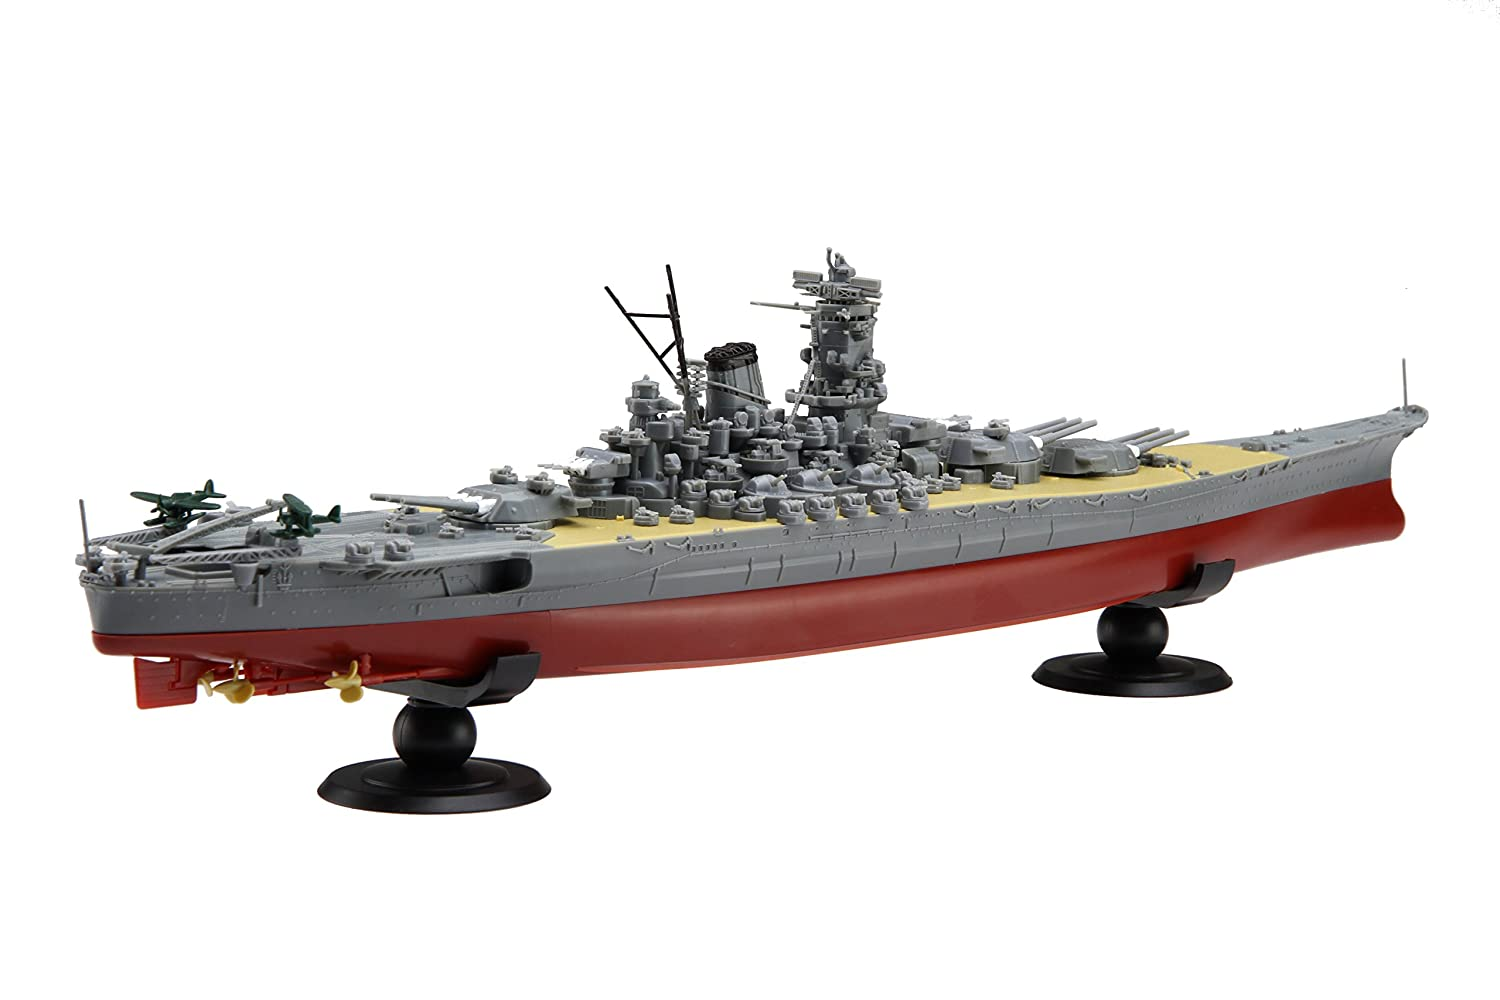 Fujimi Model 1/700 Ship Next Series No 01 Japanese Navy Battleship Yamato